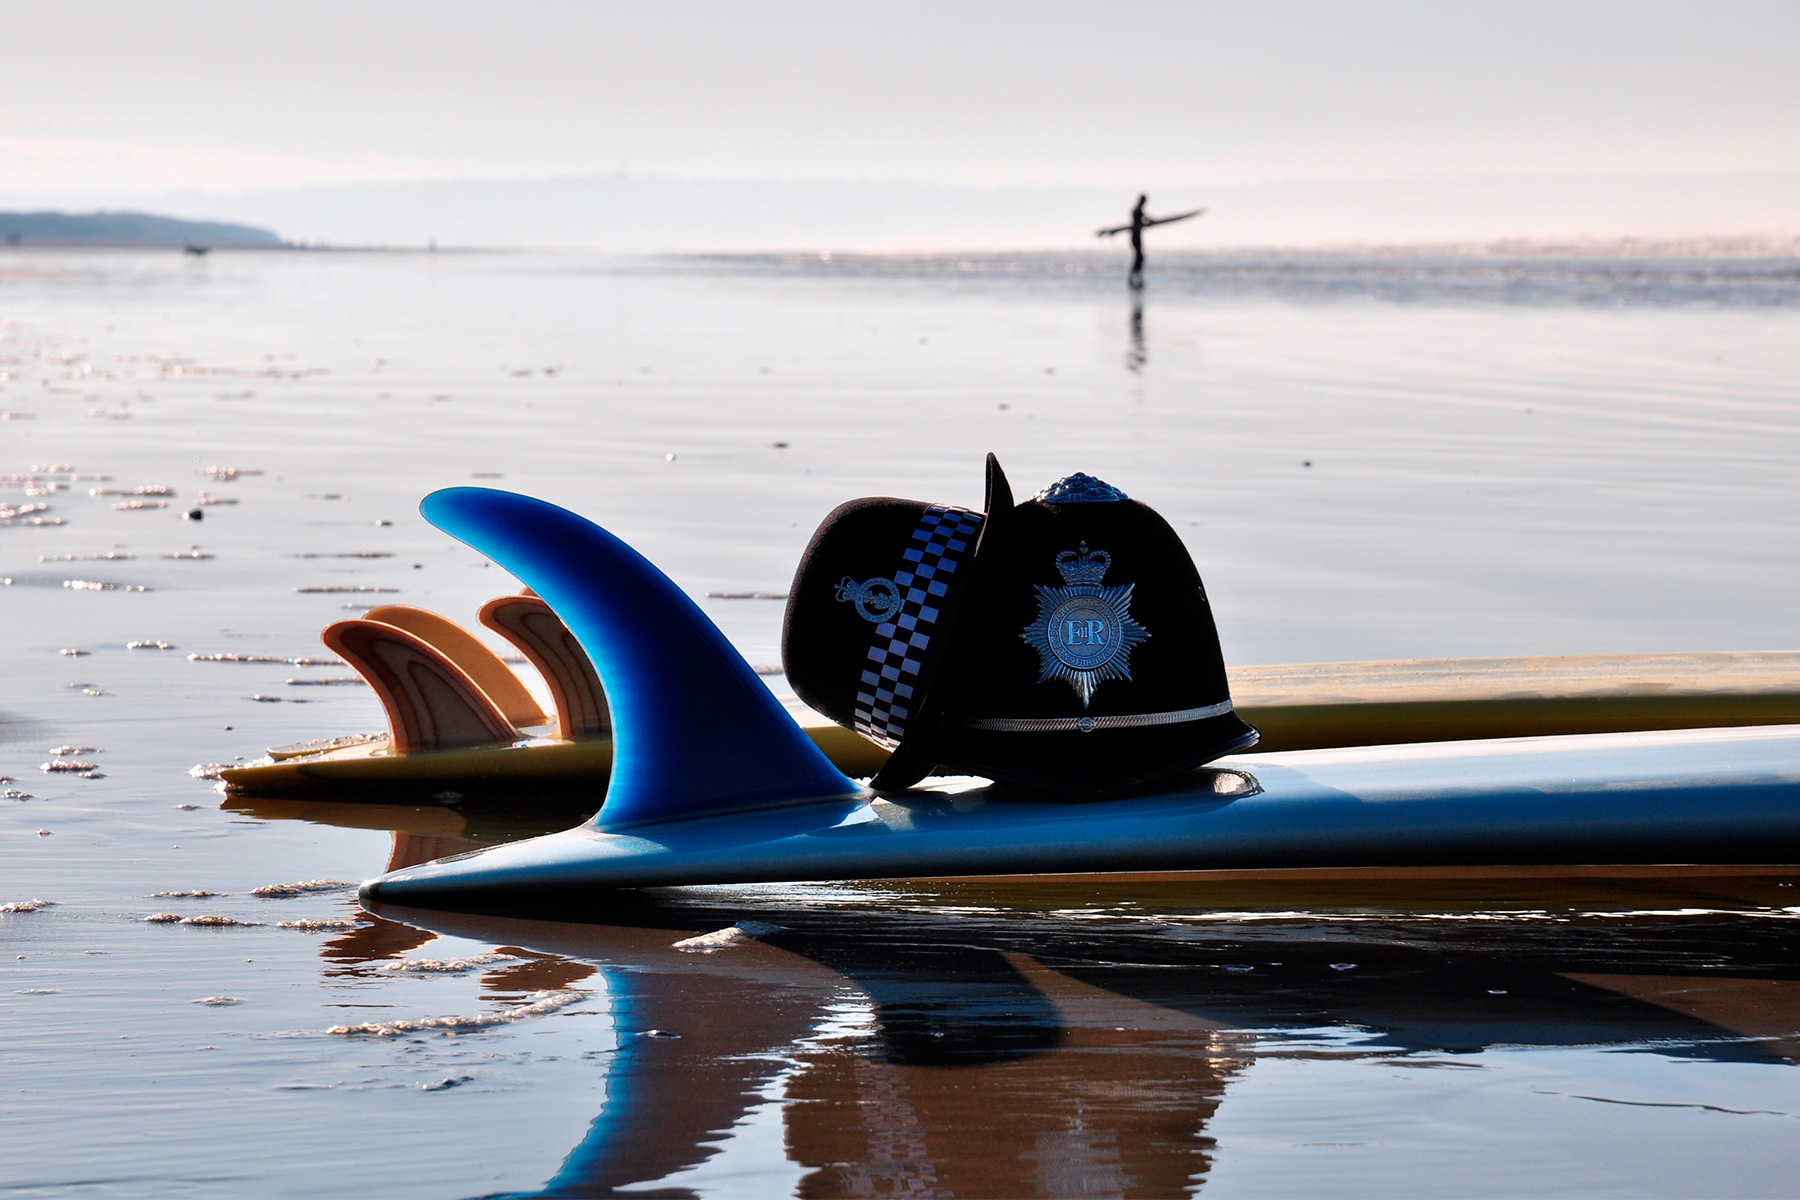 a british police hat and helmet on a surfboard on the beach